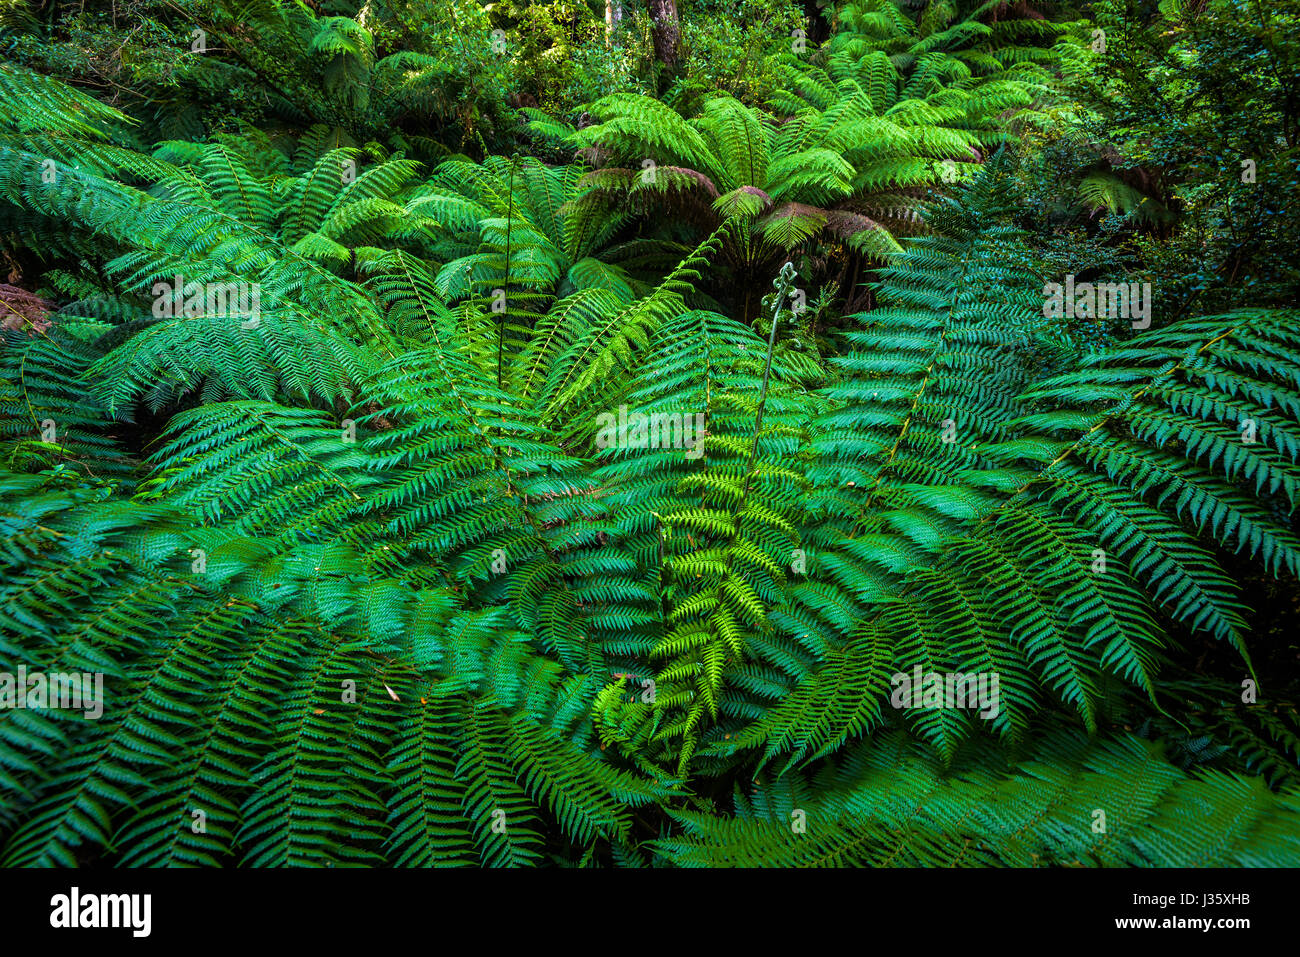 Ferns in Melba Gully, Great Otway National Park, Victoria - Stock Image